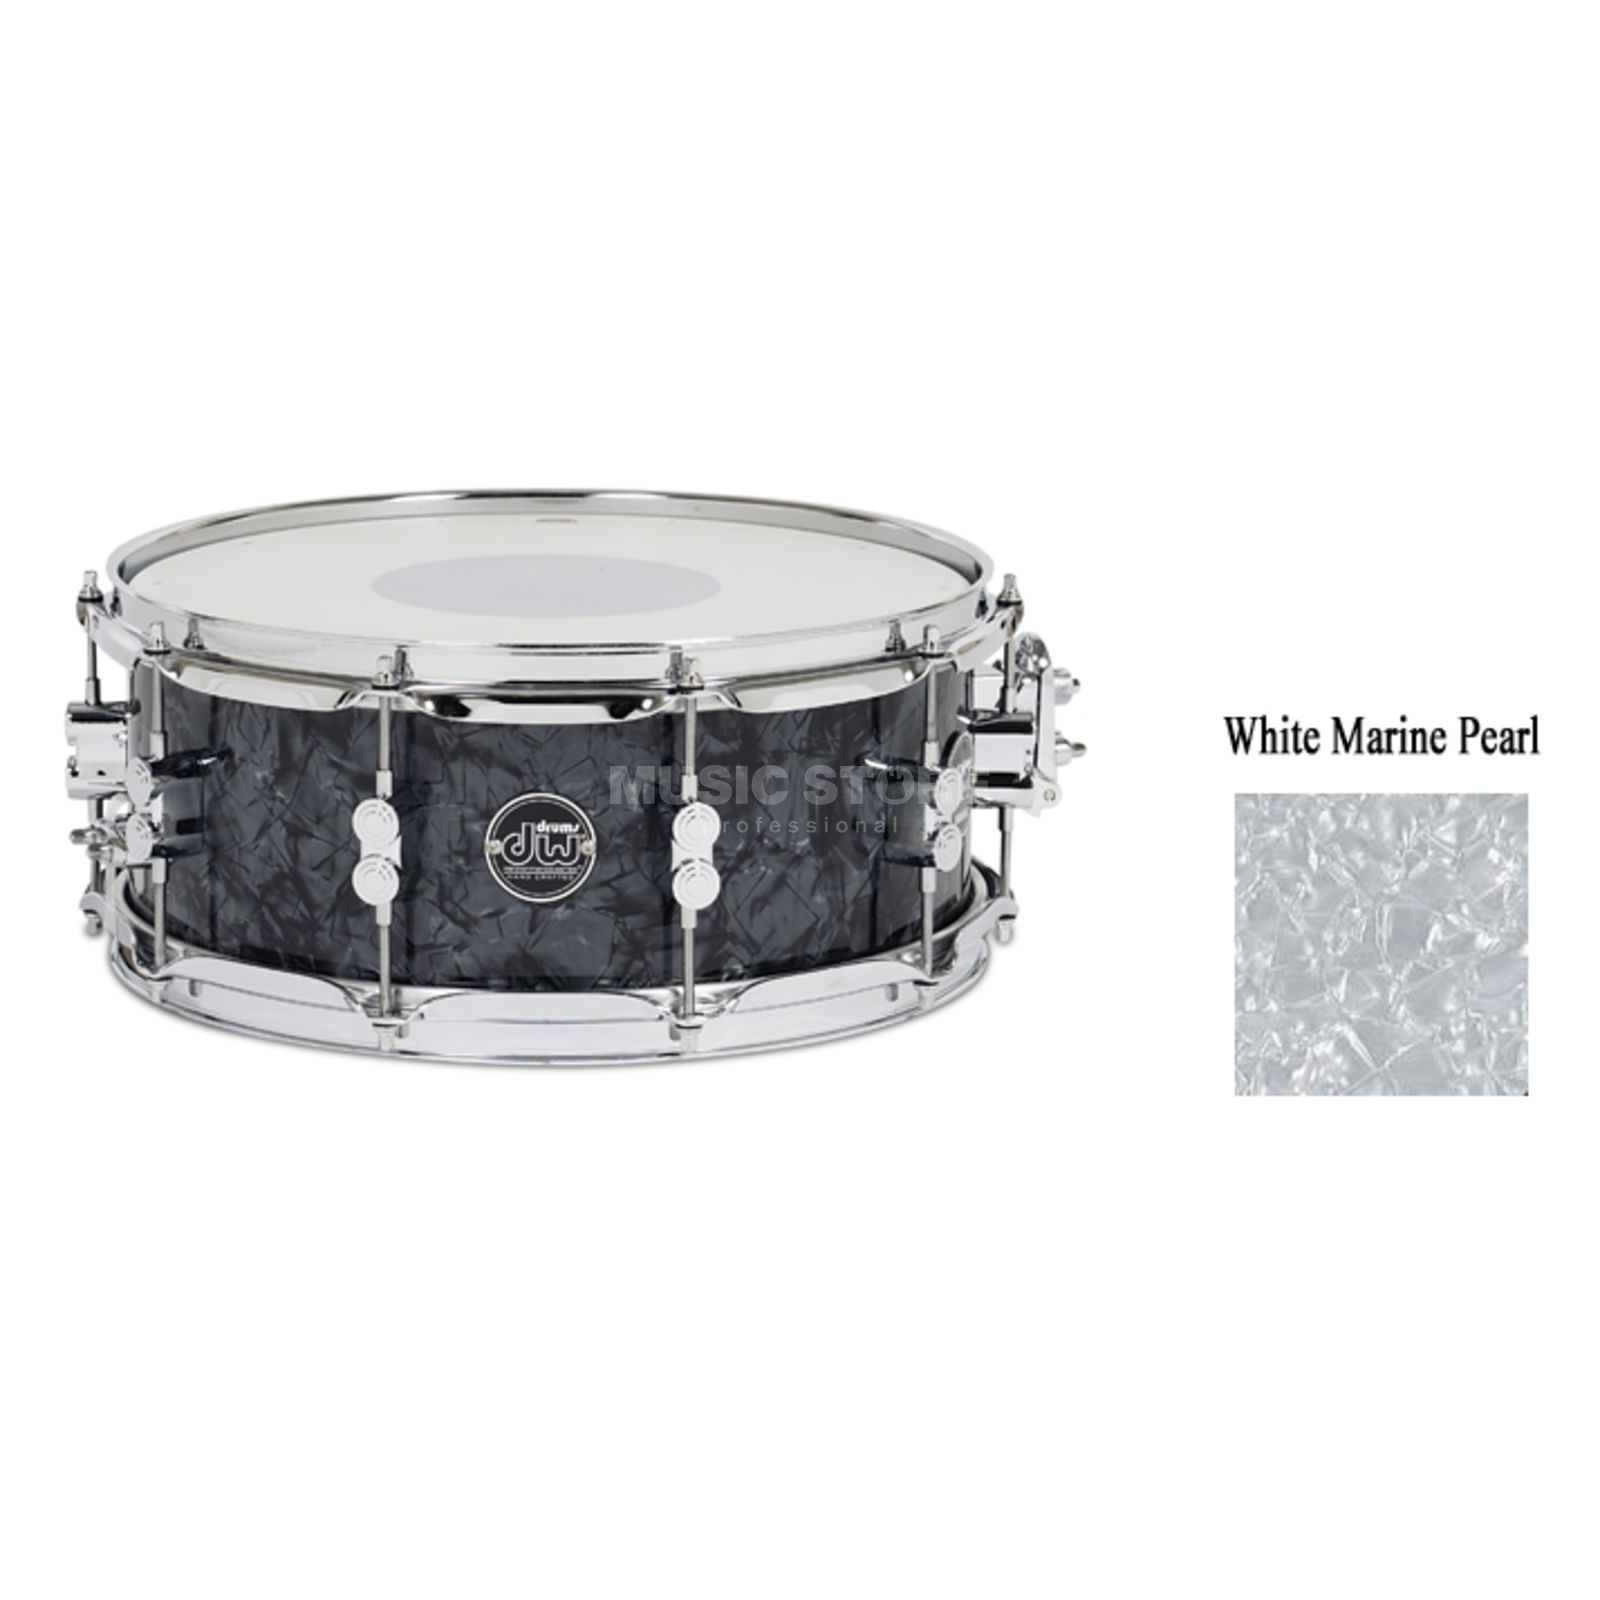 "Drum Workshop Performance Snare 14""x6,5"", White Marine Pearl Produktbillede"